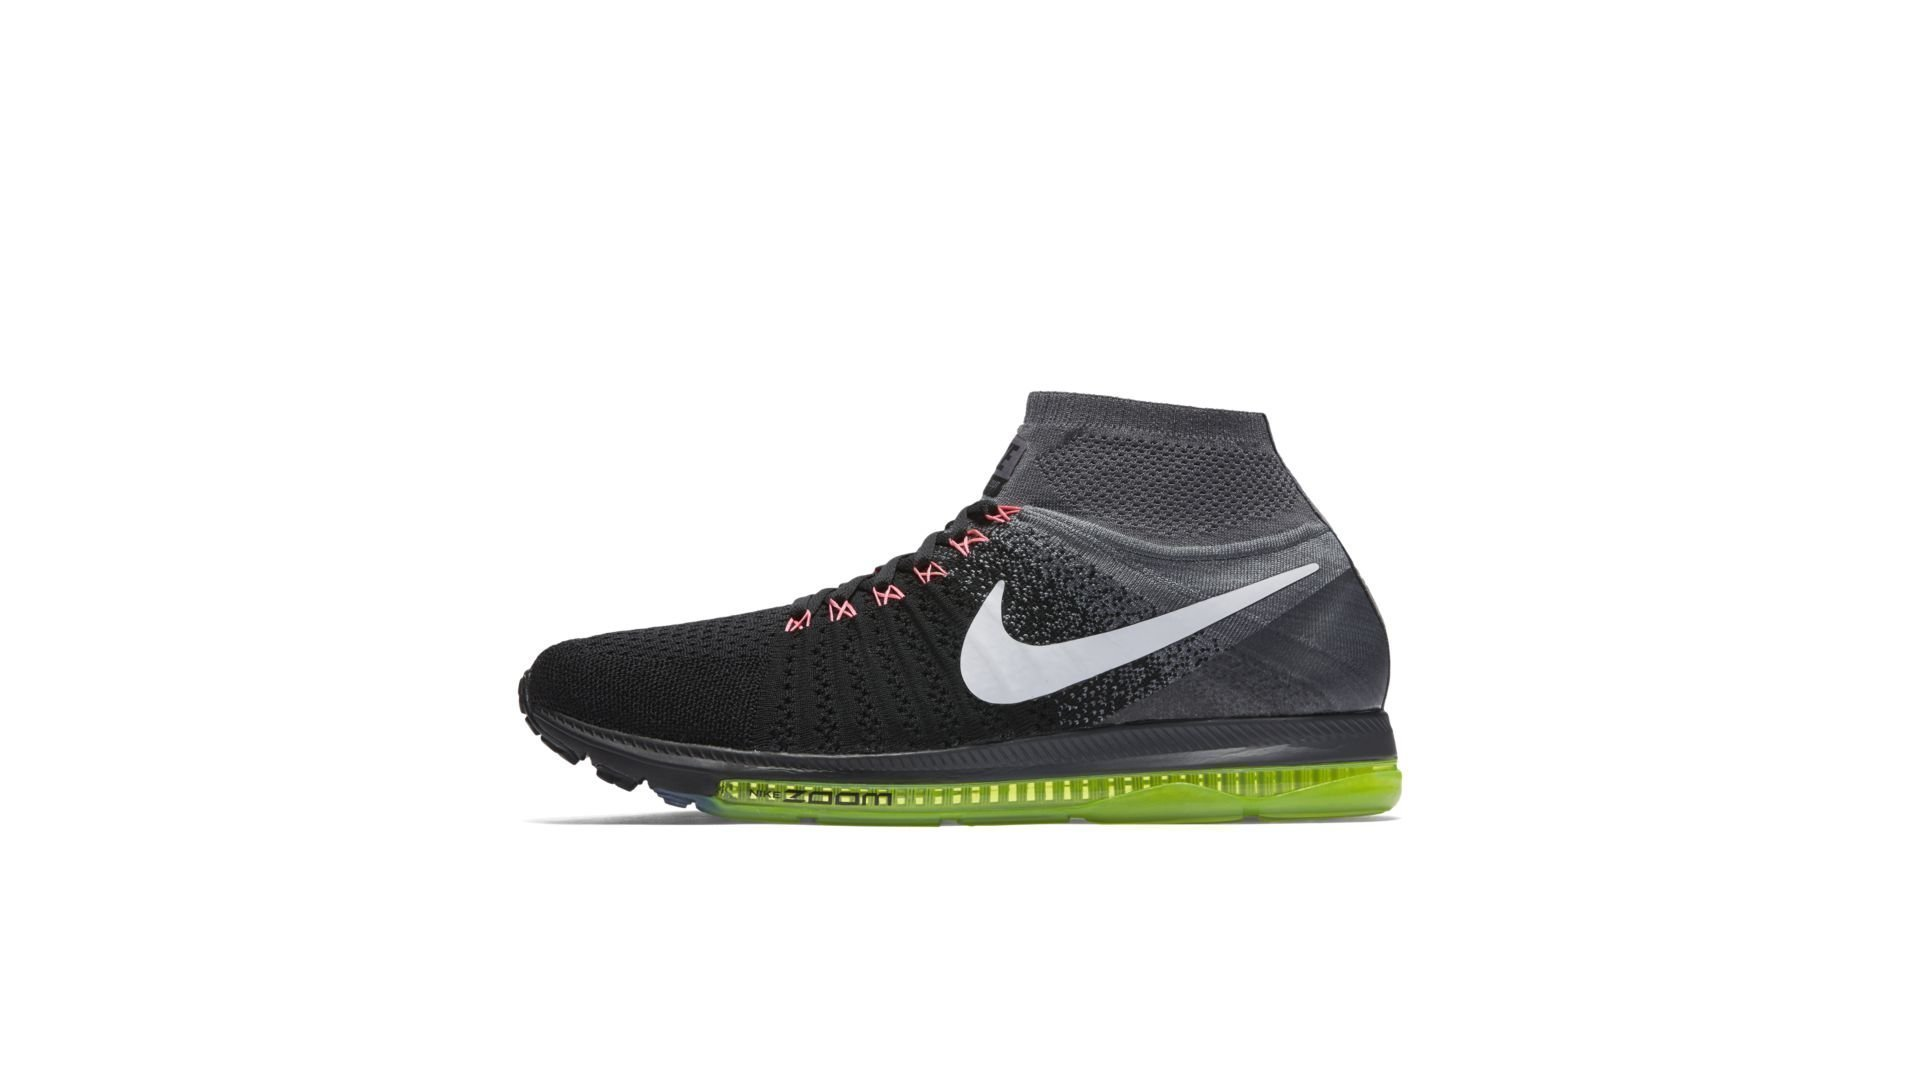 Nike Zoom All Out Flyknit Black White Volt (W) (844134-002)